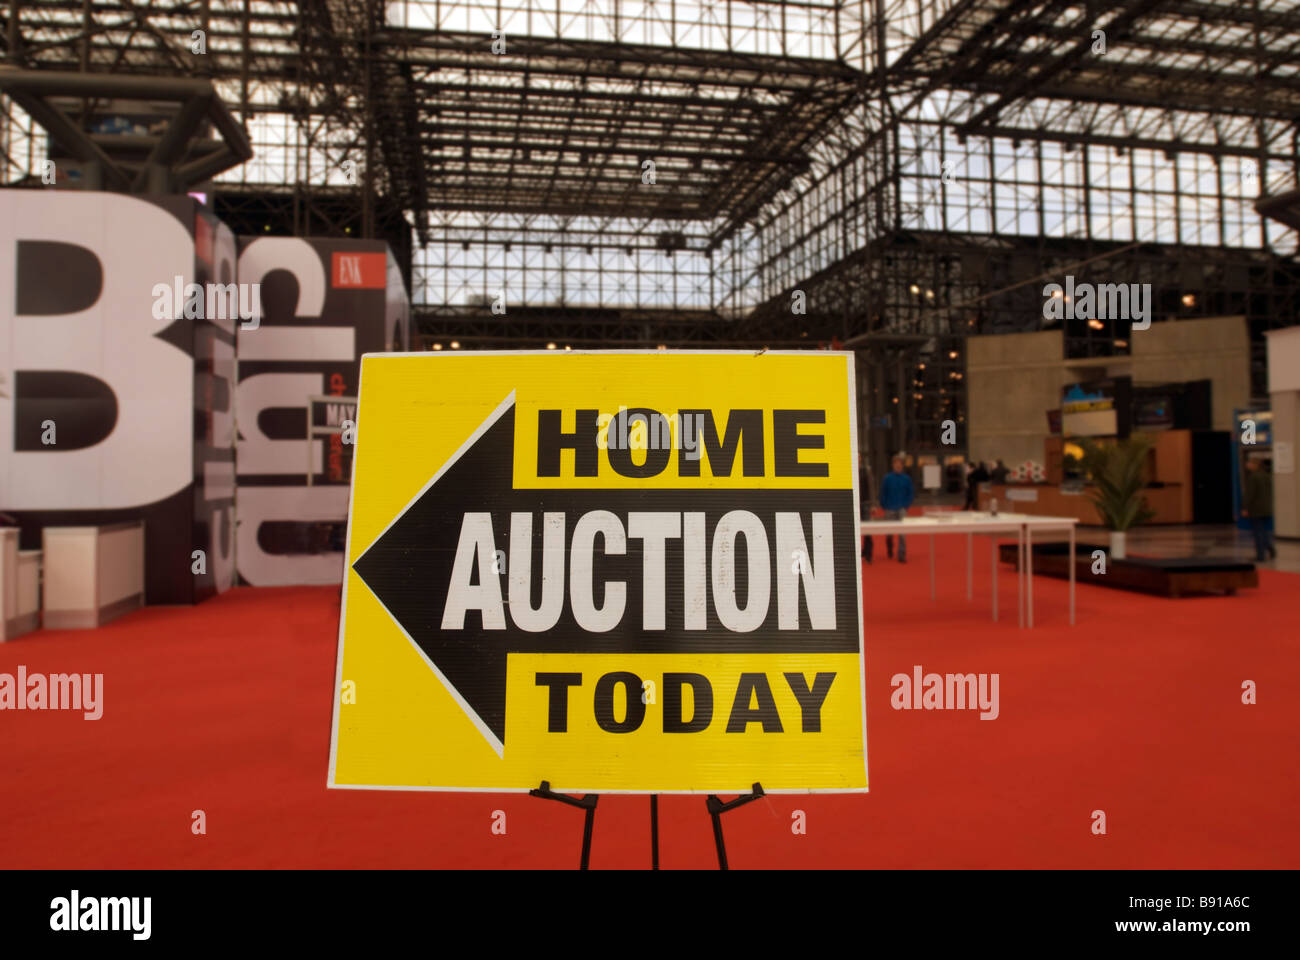 Real estate bargain hunters descend on the Jacob Javits Convention Center in New York - Stock Image